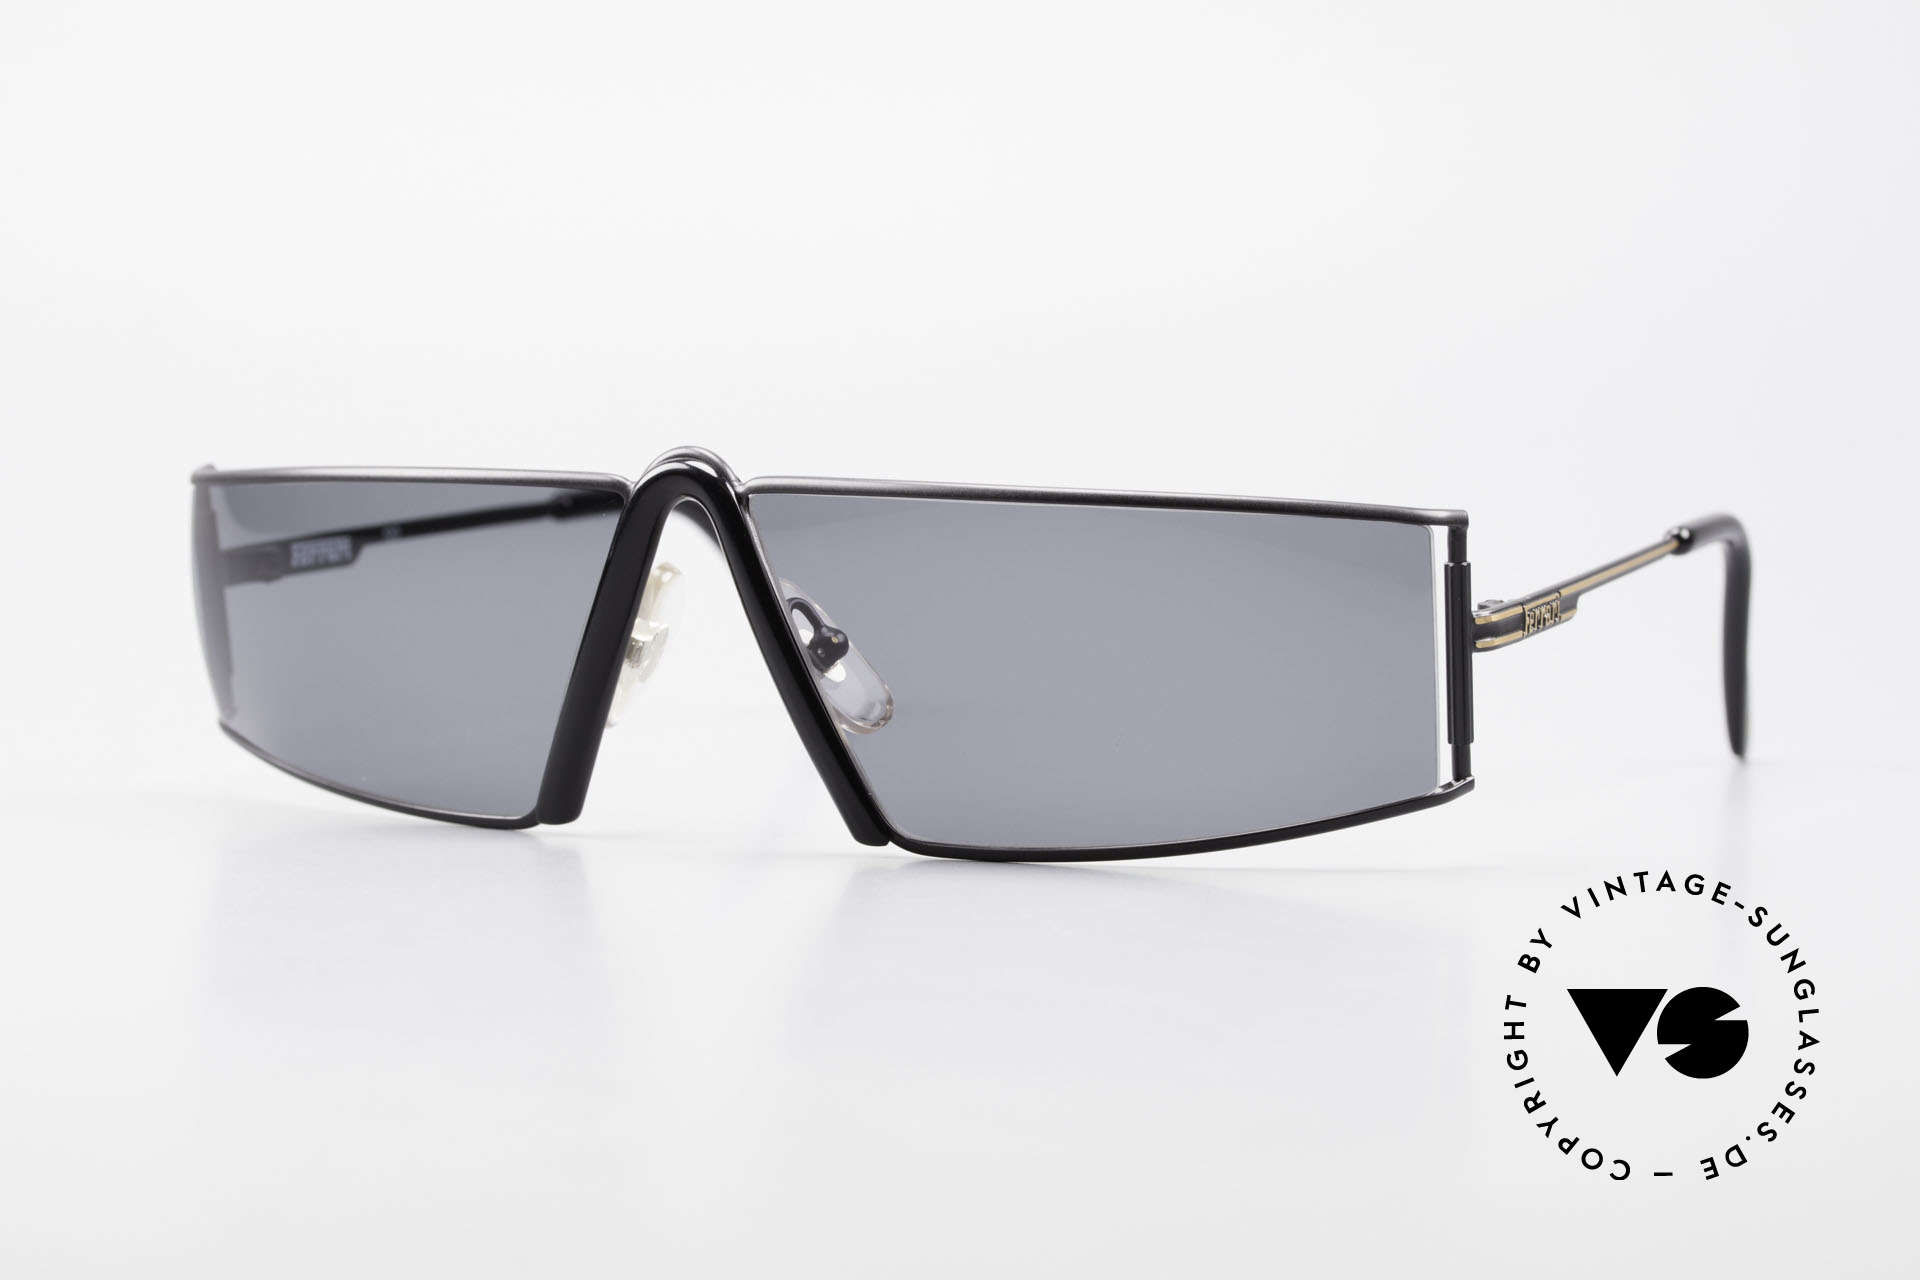 Ferrari F19/S Shades Like XL Reading Specs, F19/S: extraordinary vintage sunglasses by Ferrari, Made for Men